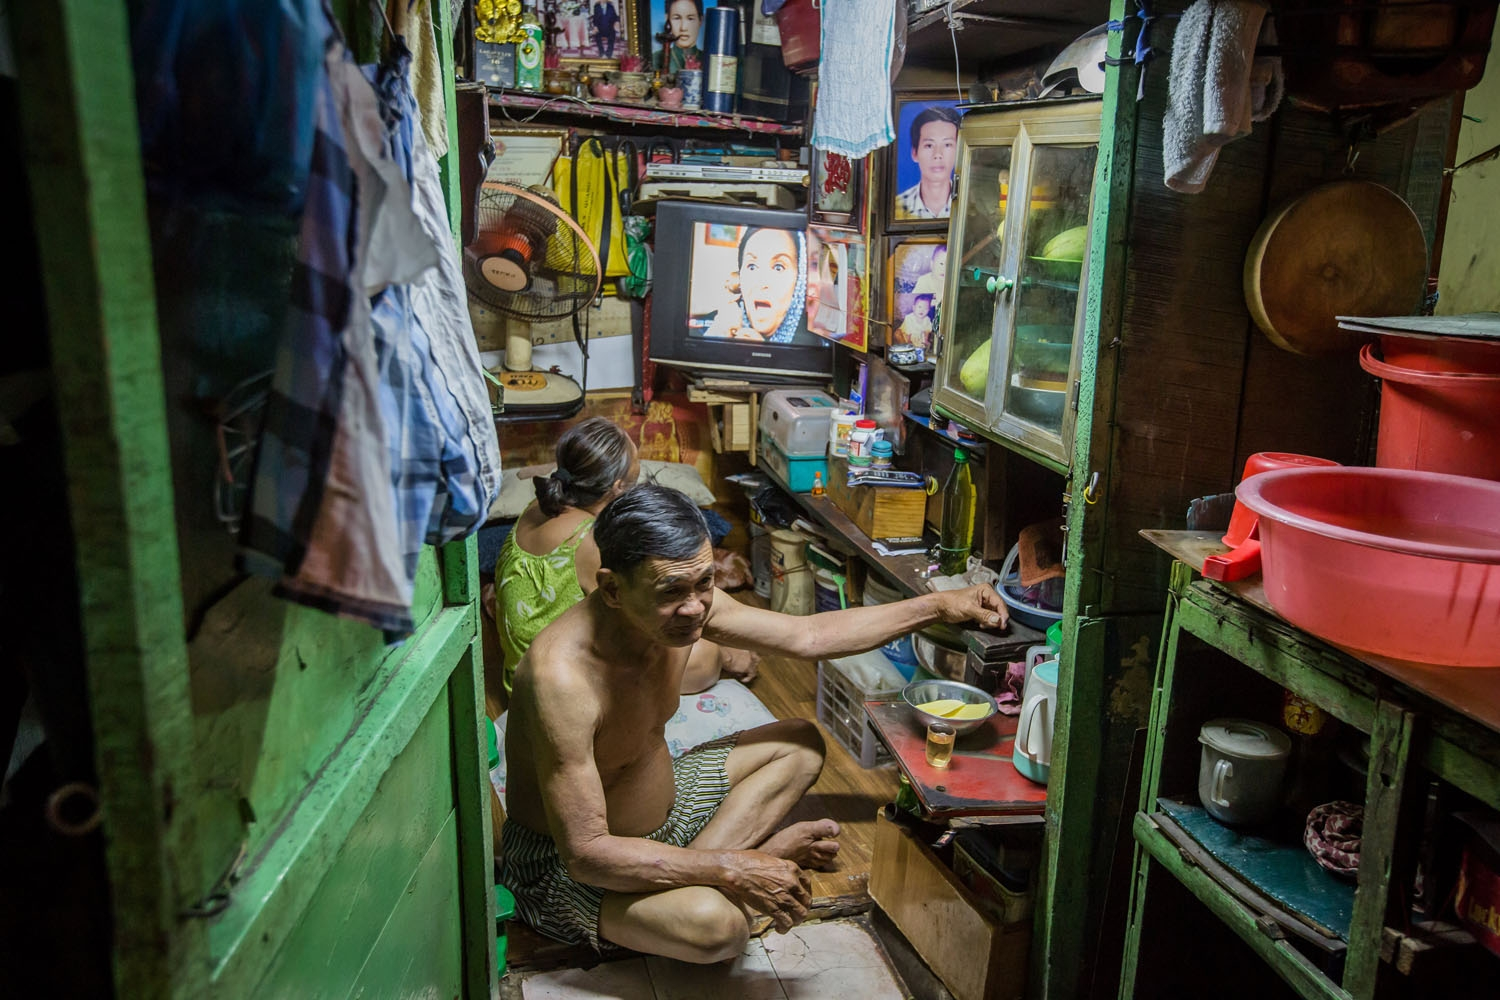 Kha Tu Ngoc (back) watches television sitting next to her husband Pham Huy Duc in their two-square-meter house in Ho Chi Minh City on May 2, 2018.